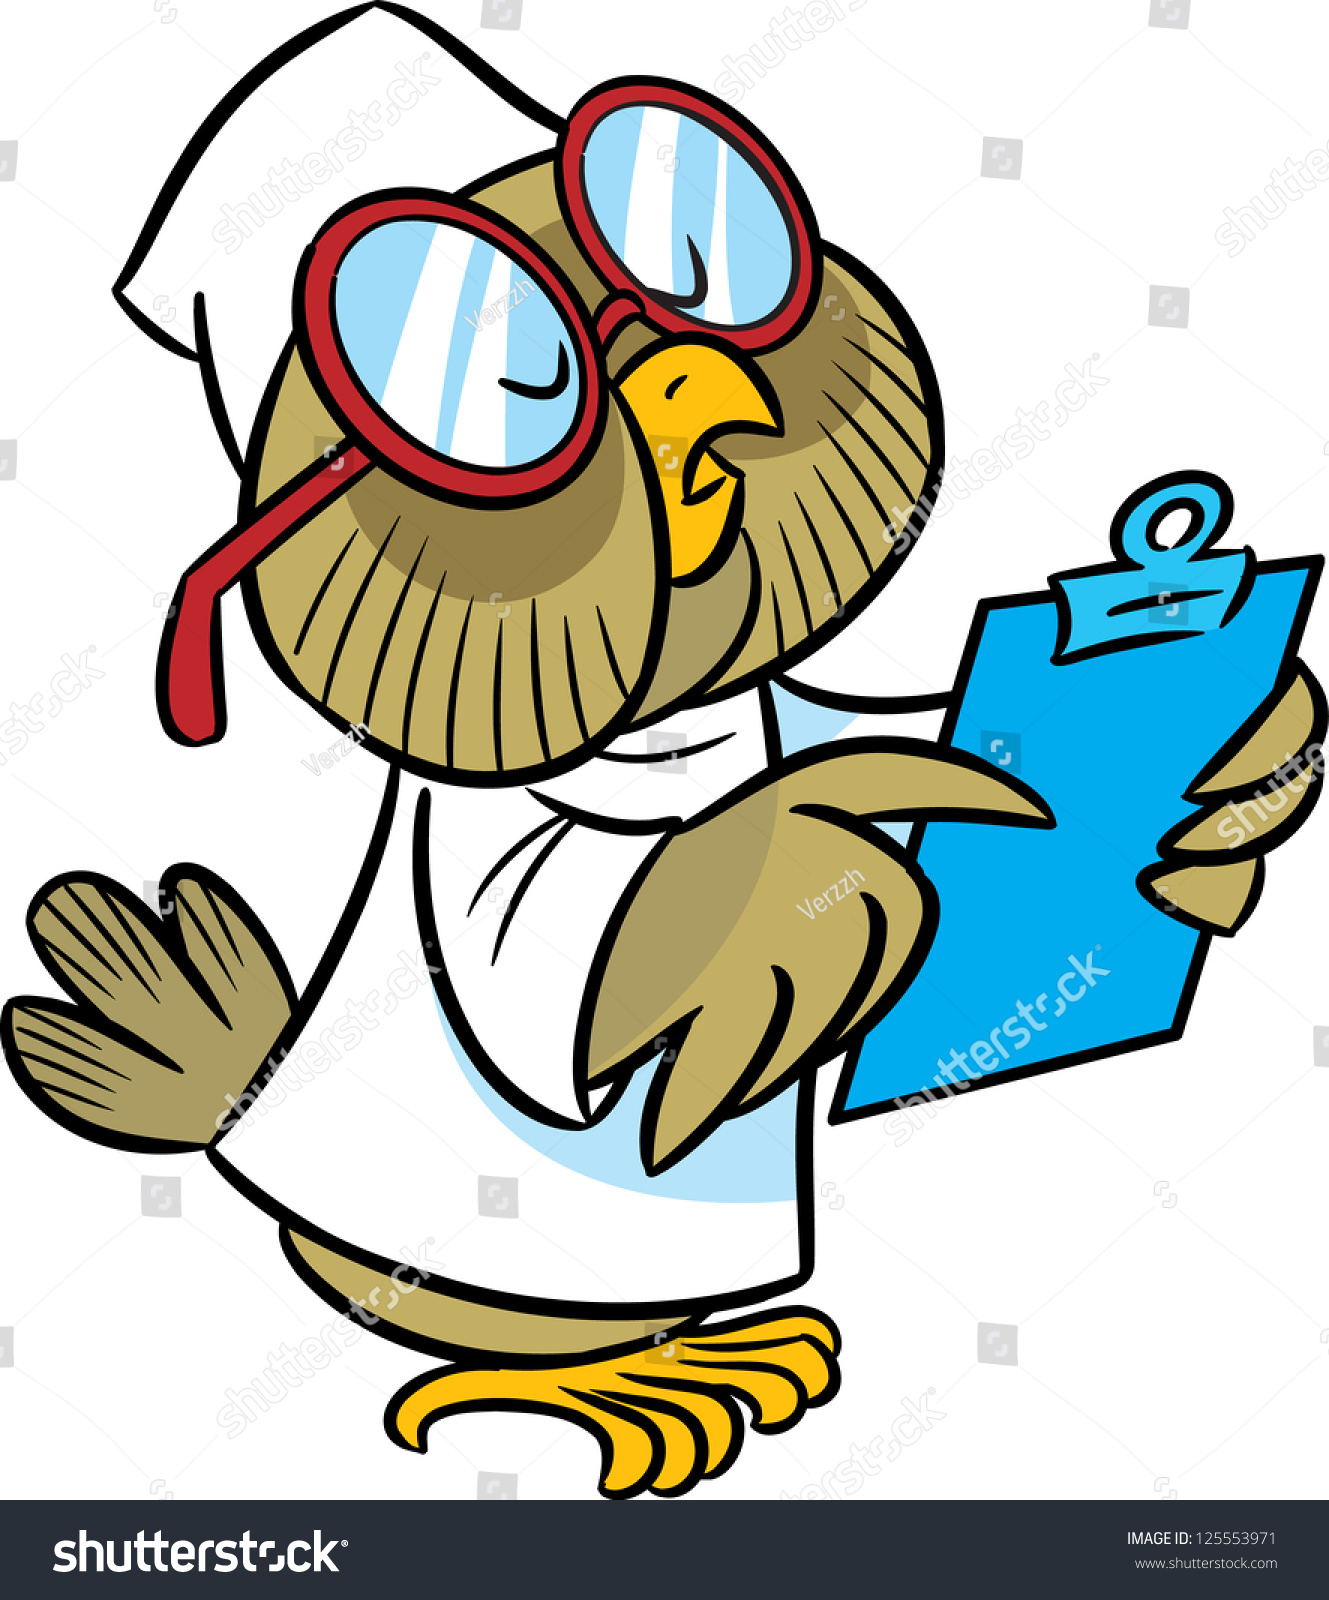 In The Illustration Cartoon Owl Doctor In A White Coat And Glasses